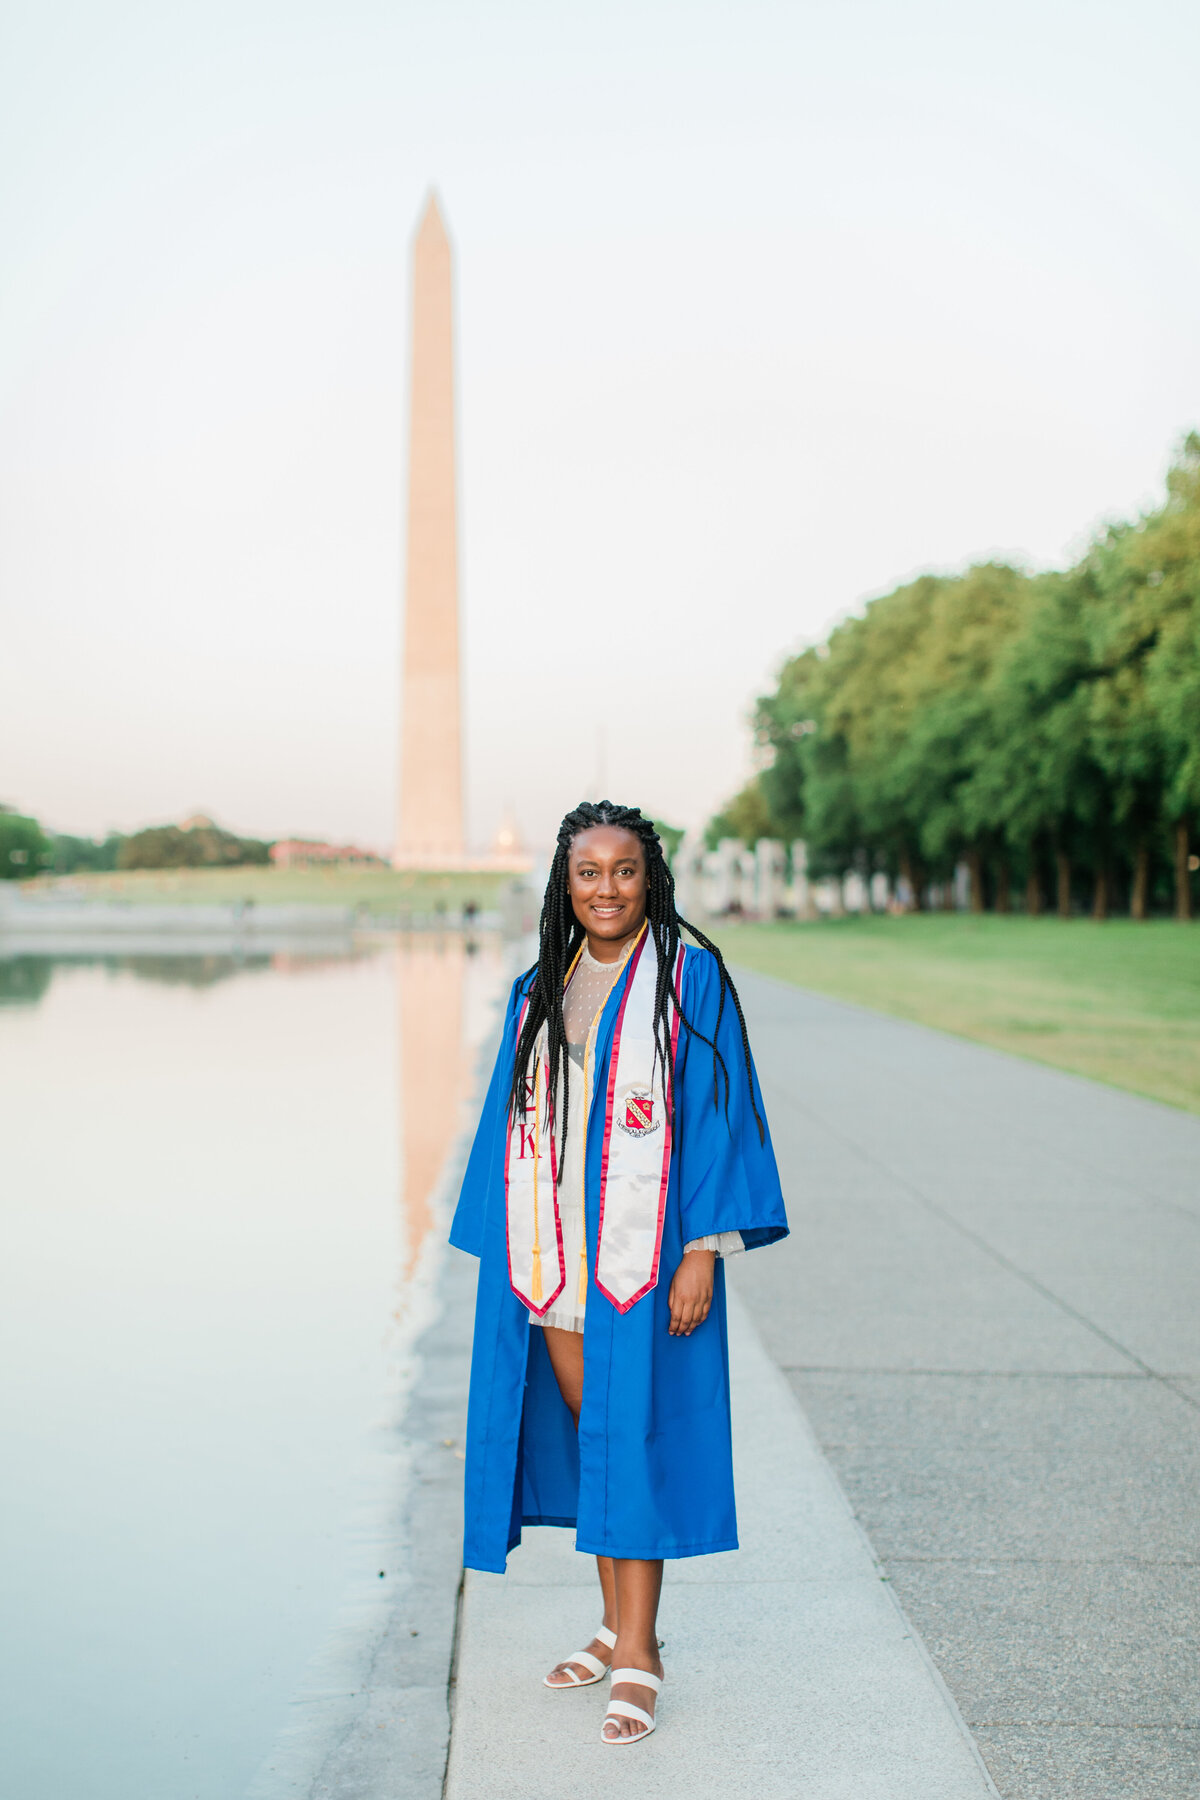 Mia_AmericanUniversity_Washington_DC_Senior_Graduation_Session_2020_Angelika_Johns_Photography-5362